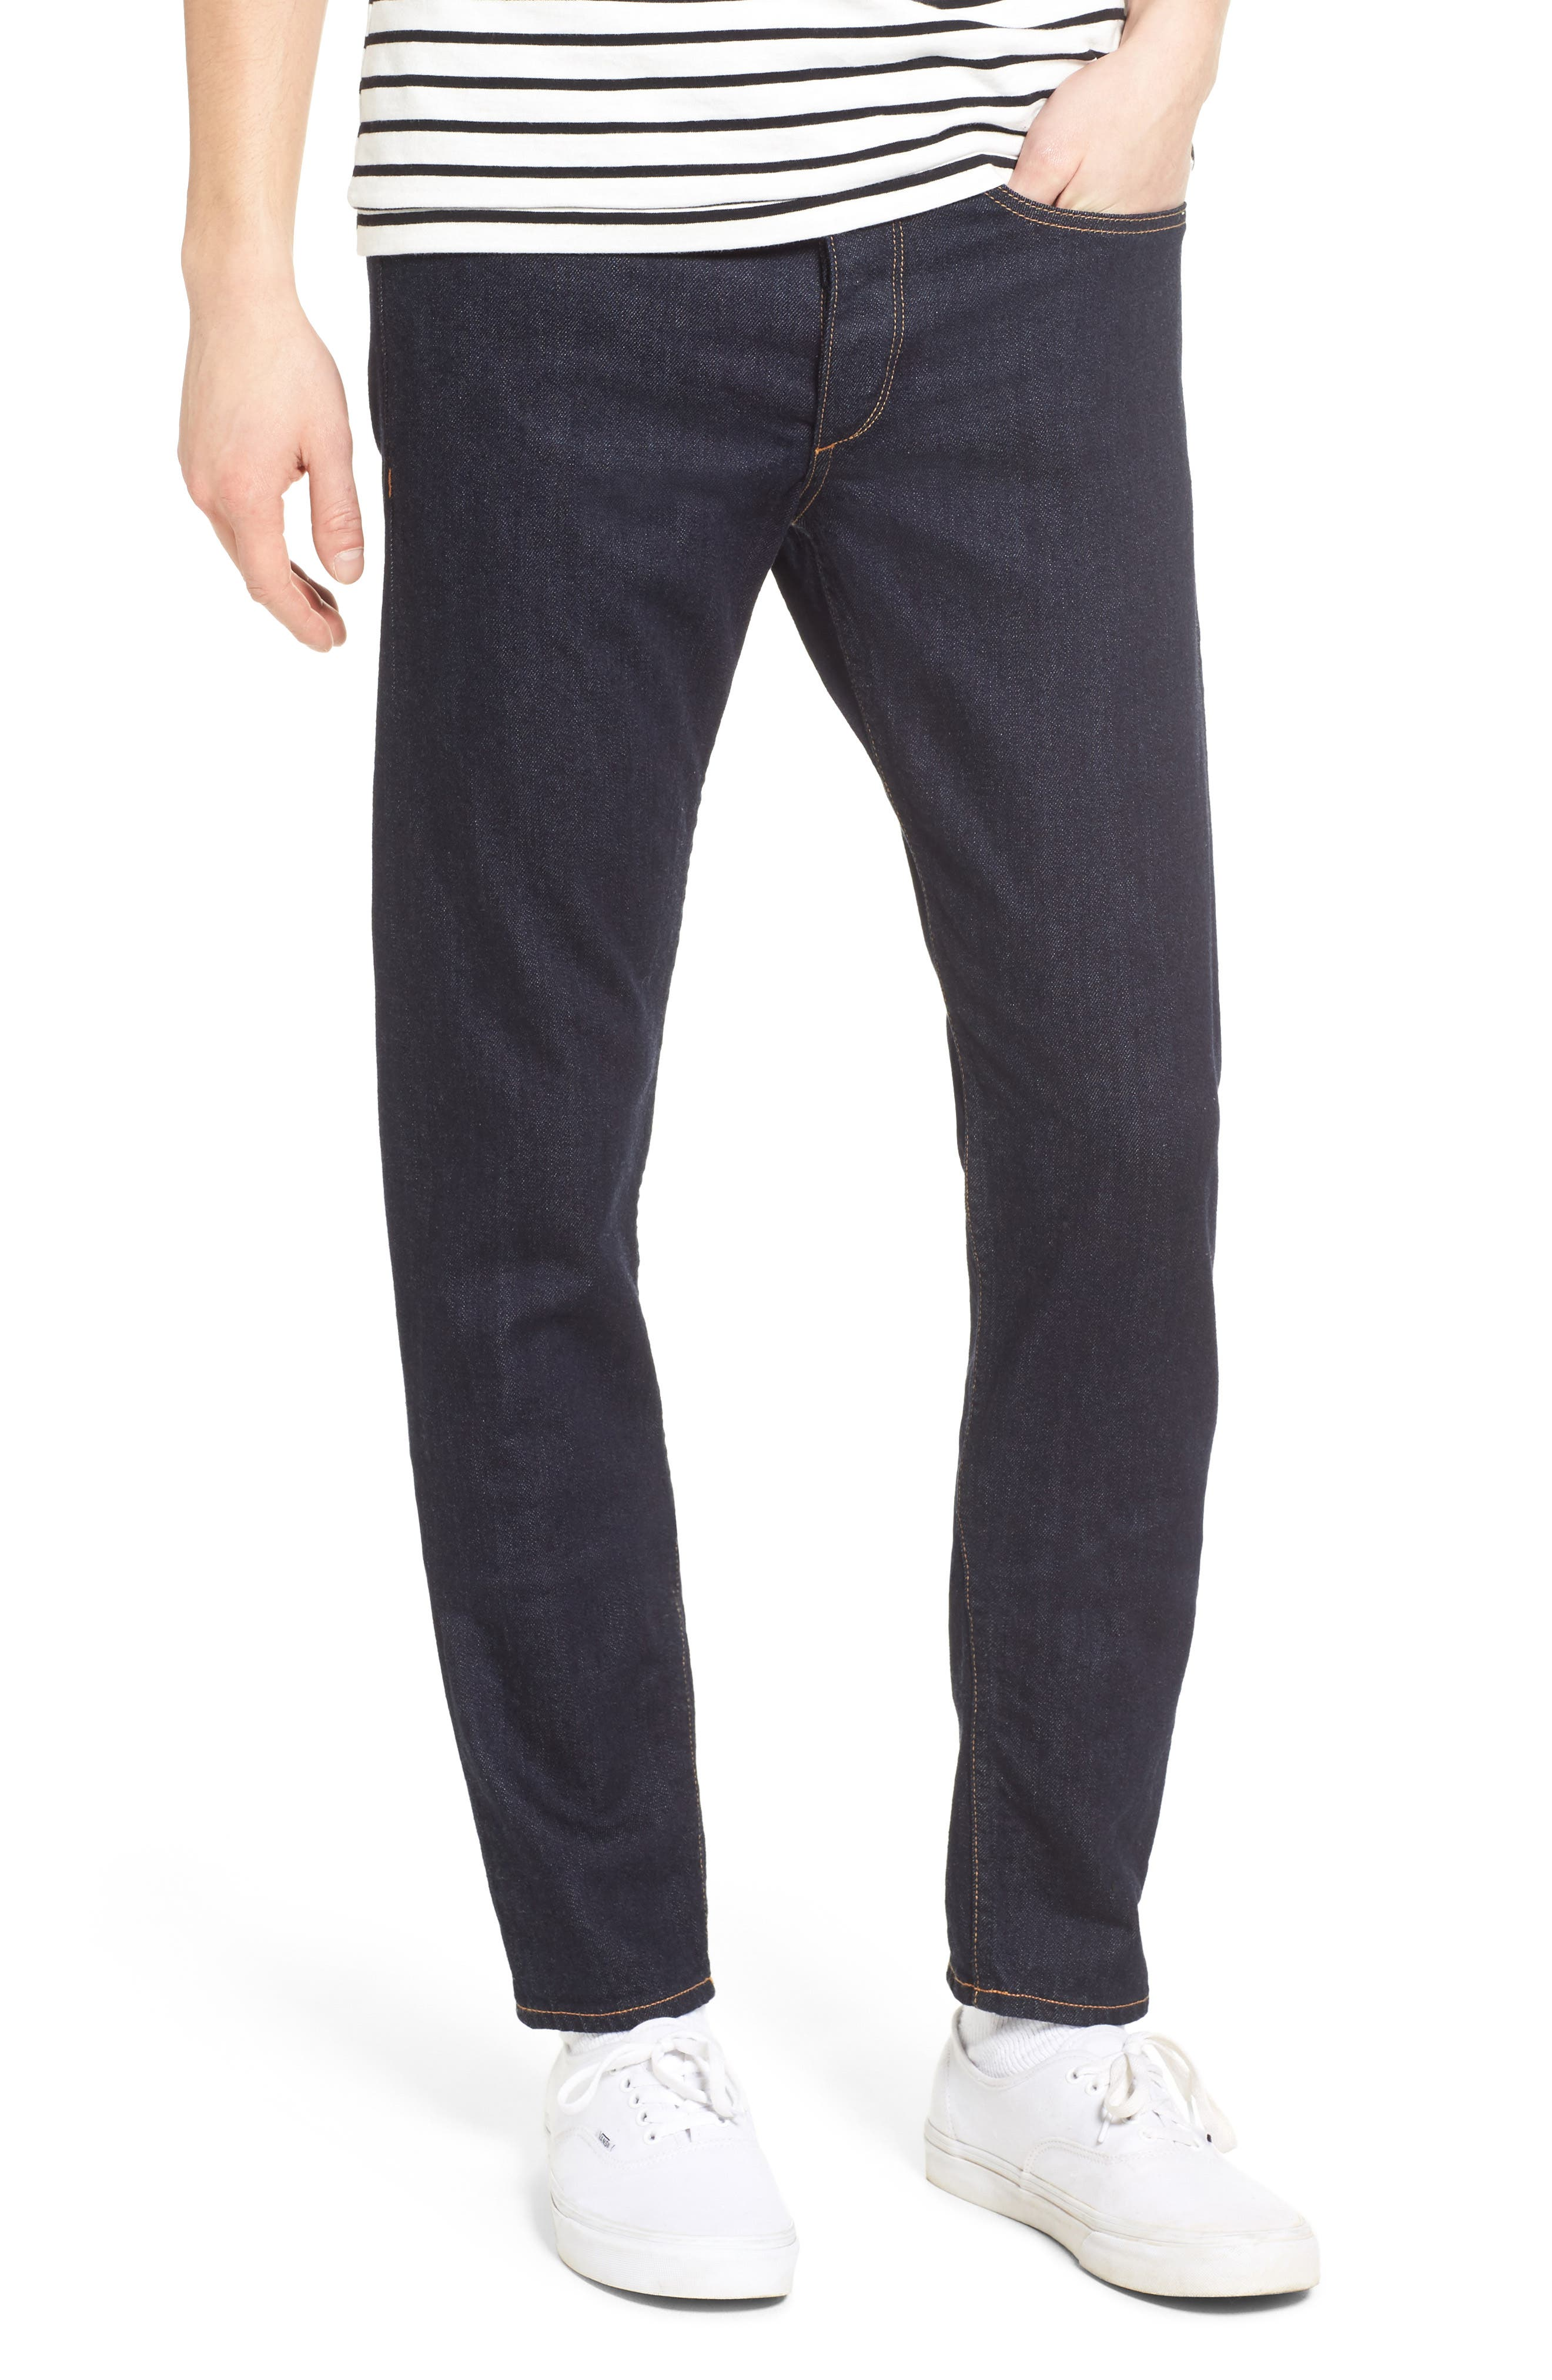 Standard Issue Fit 1 Skinny Fit Jeans,                         Main,                         color, Rinse Selvage